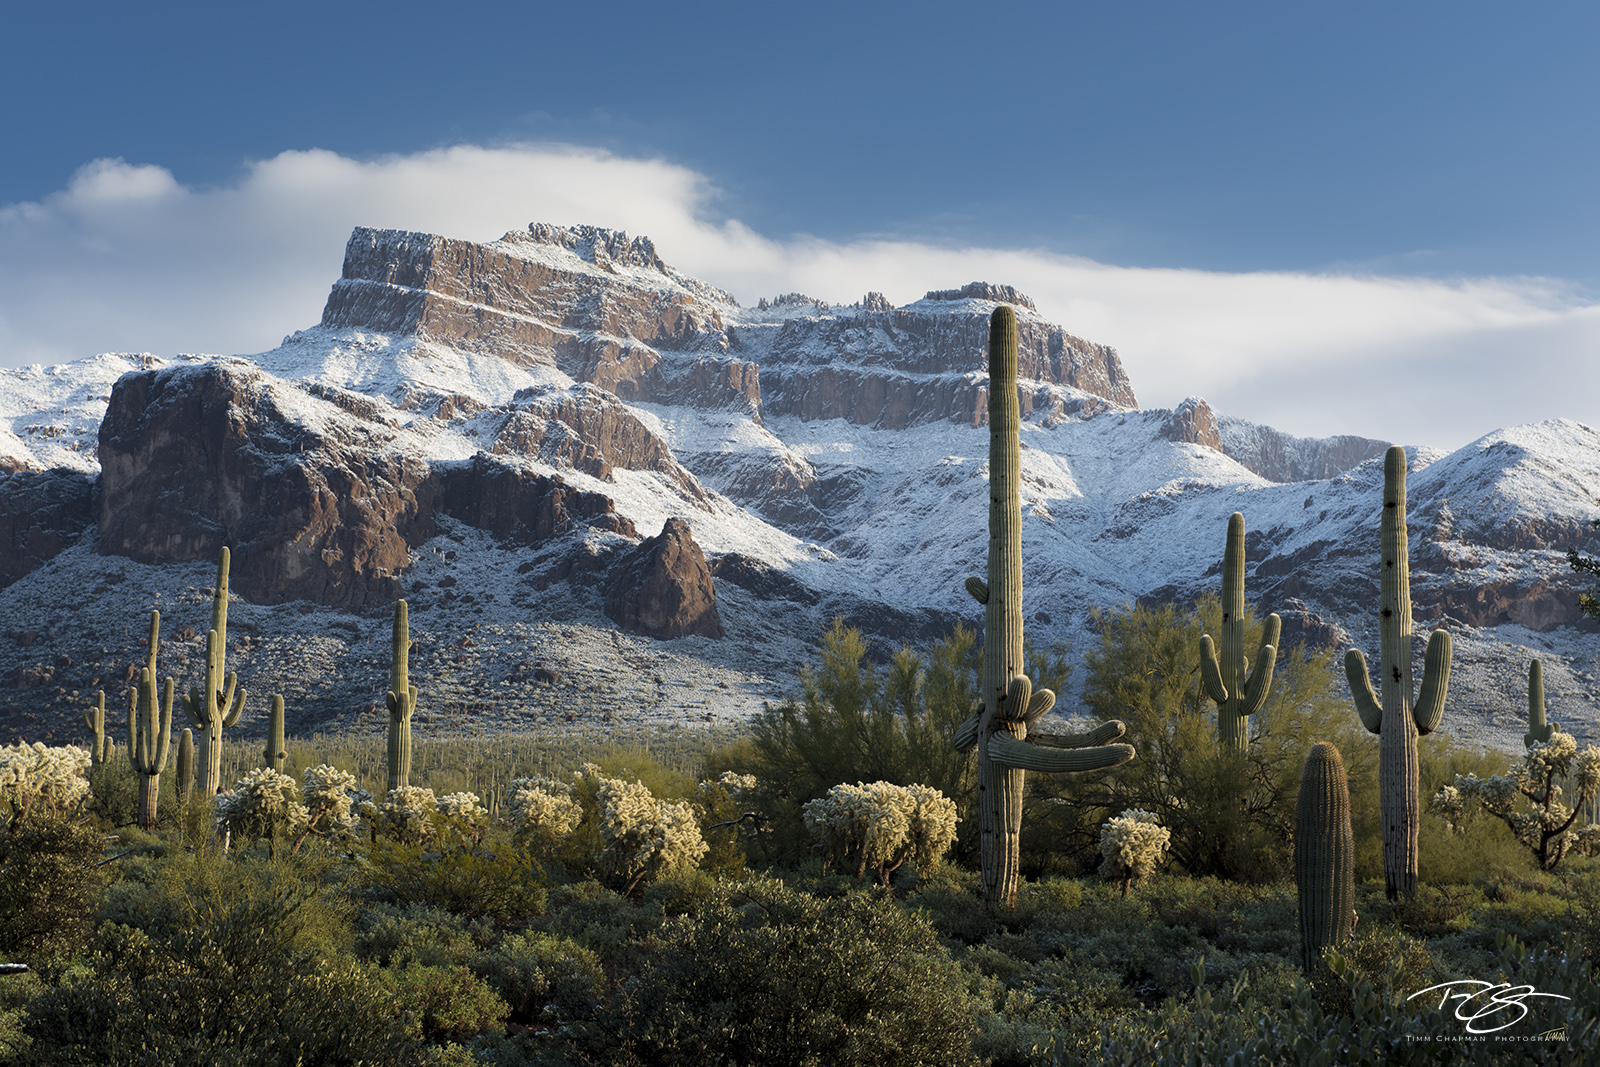 Arizona, Superstition Mountain, Sonoran Winter, gold canyon, snow on Superstition Mountain, cactus, saguaro, superstition wilderness, snow in the desert, sonoran desert, winter, snow, saguaro cactus,,, photo